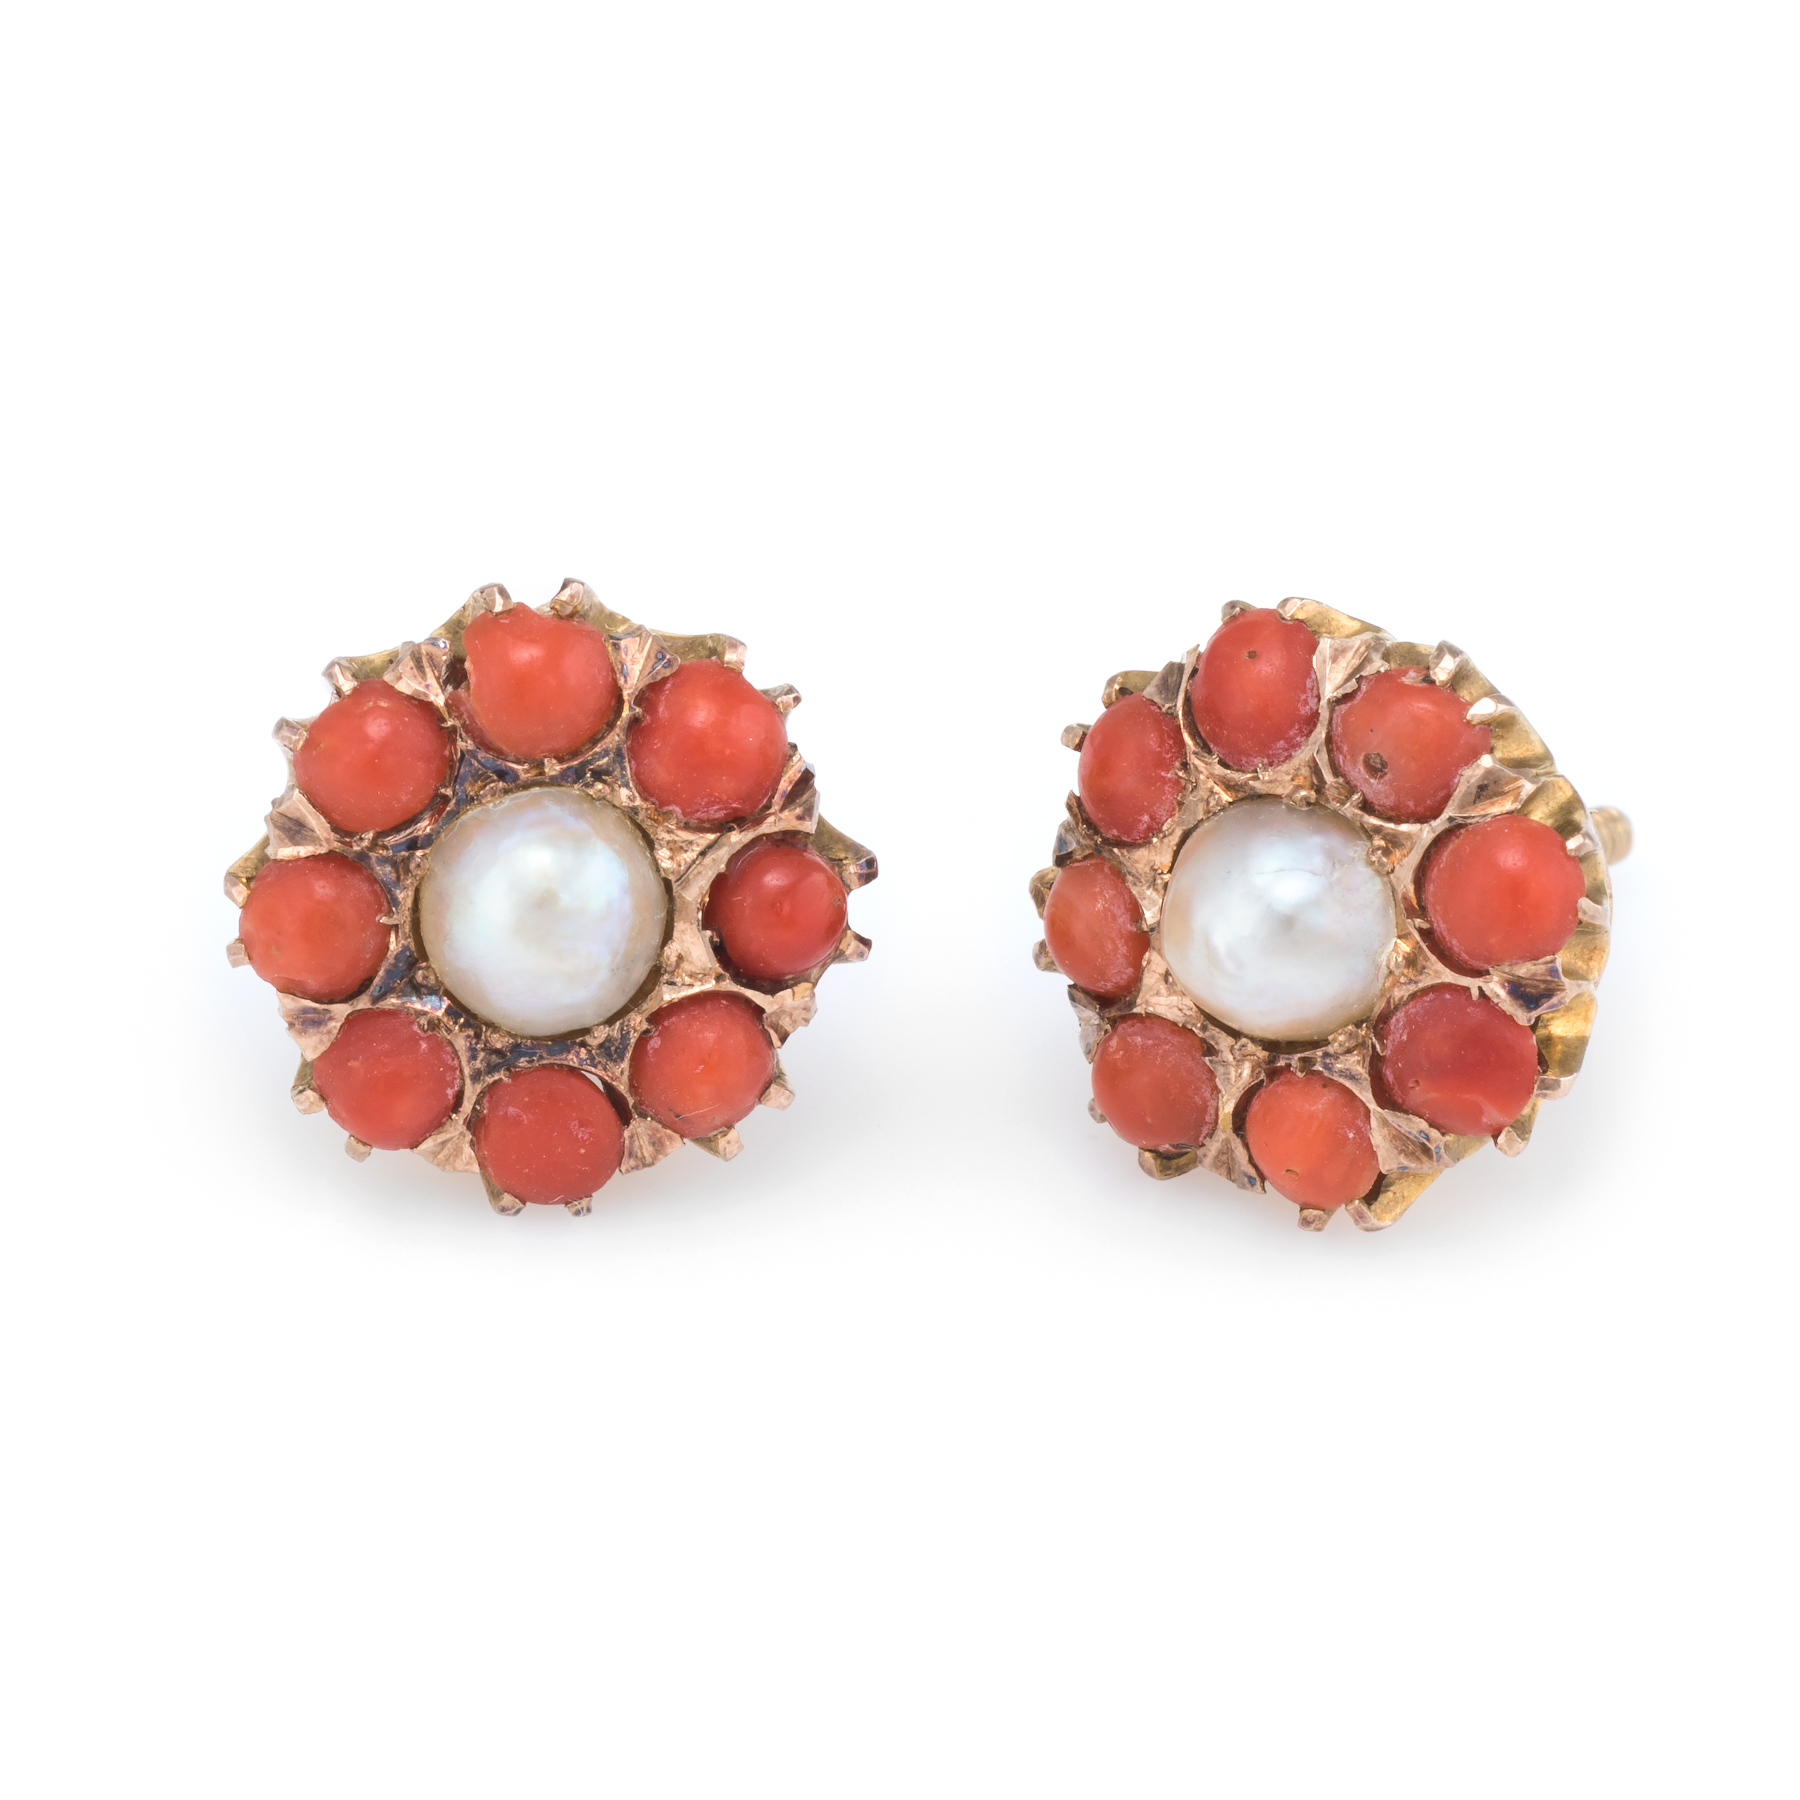 68efdd345 Details about Coral Pearl Round Stud Earrings Vintage 14k Yellow Gold  Estate Fine Jewelry